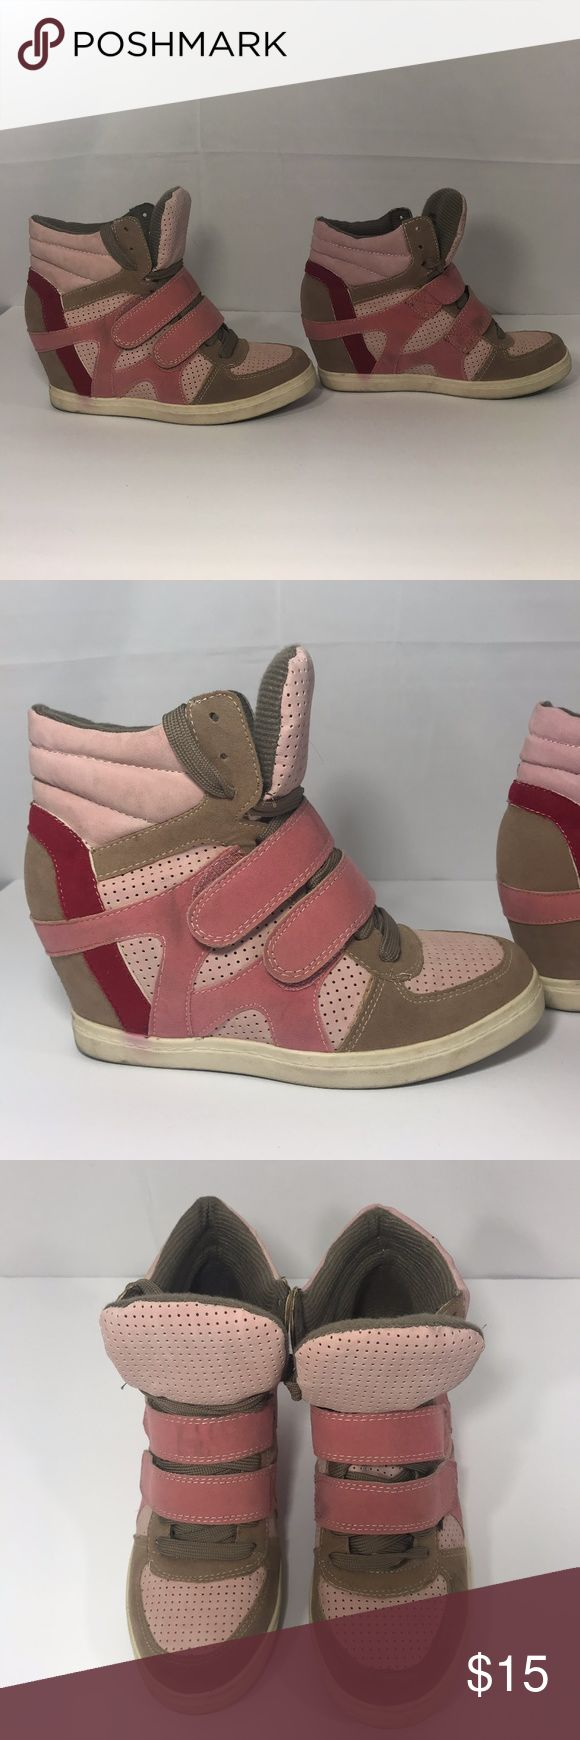 """Guess Wedge sneakers Size 8 GUESS takes the sporty sneaker to new heights with a dramatic hidden wedge and tapered almond toes. Closed-toe lace-up sneakers Velcro strap across vamp with studs around the ankle 3"""" hidden wedge heel Used Mint condition Colors: Pink Light pink Tan Guess Shoes Sneakers"""